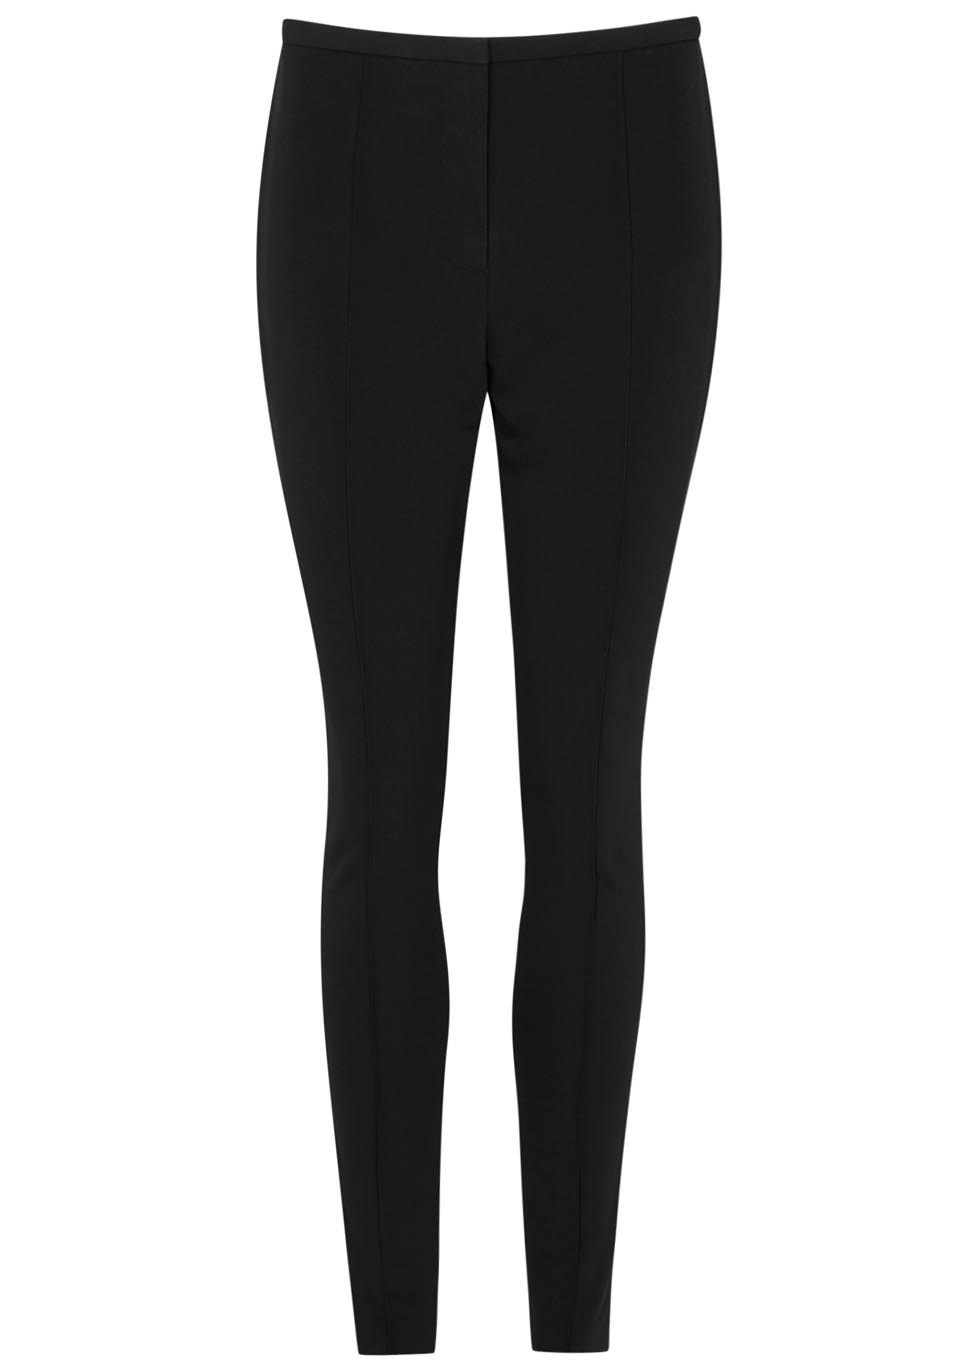 Black Skinny Trousers - length: standard; pattern: plain; waist: mid/regular rise; predominant colour: black; occasions: evening, creative work; fibres: polyester/polyamide - 100%; texture group: crepes; fit: skinny/tight leg; pattern type: fabric; style: standard; season: s/s 2016; wardrobe: basic